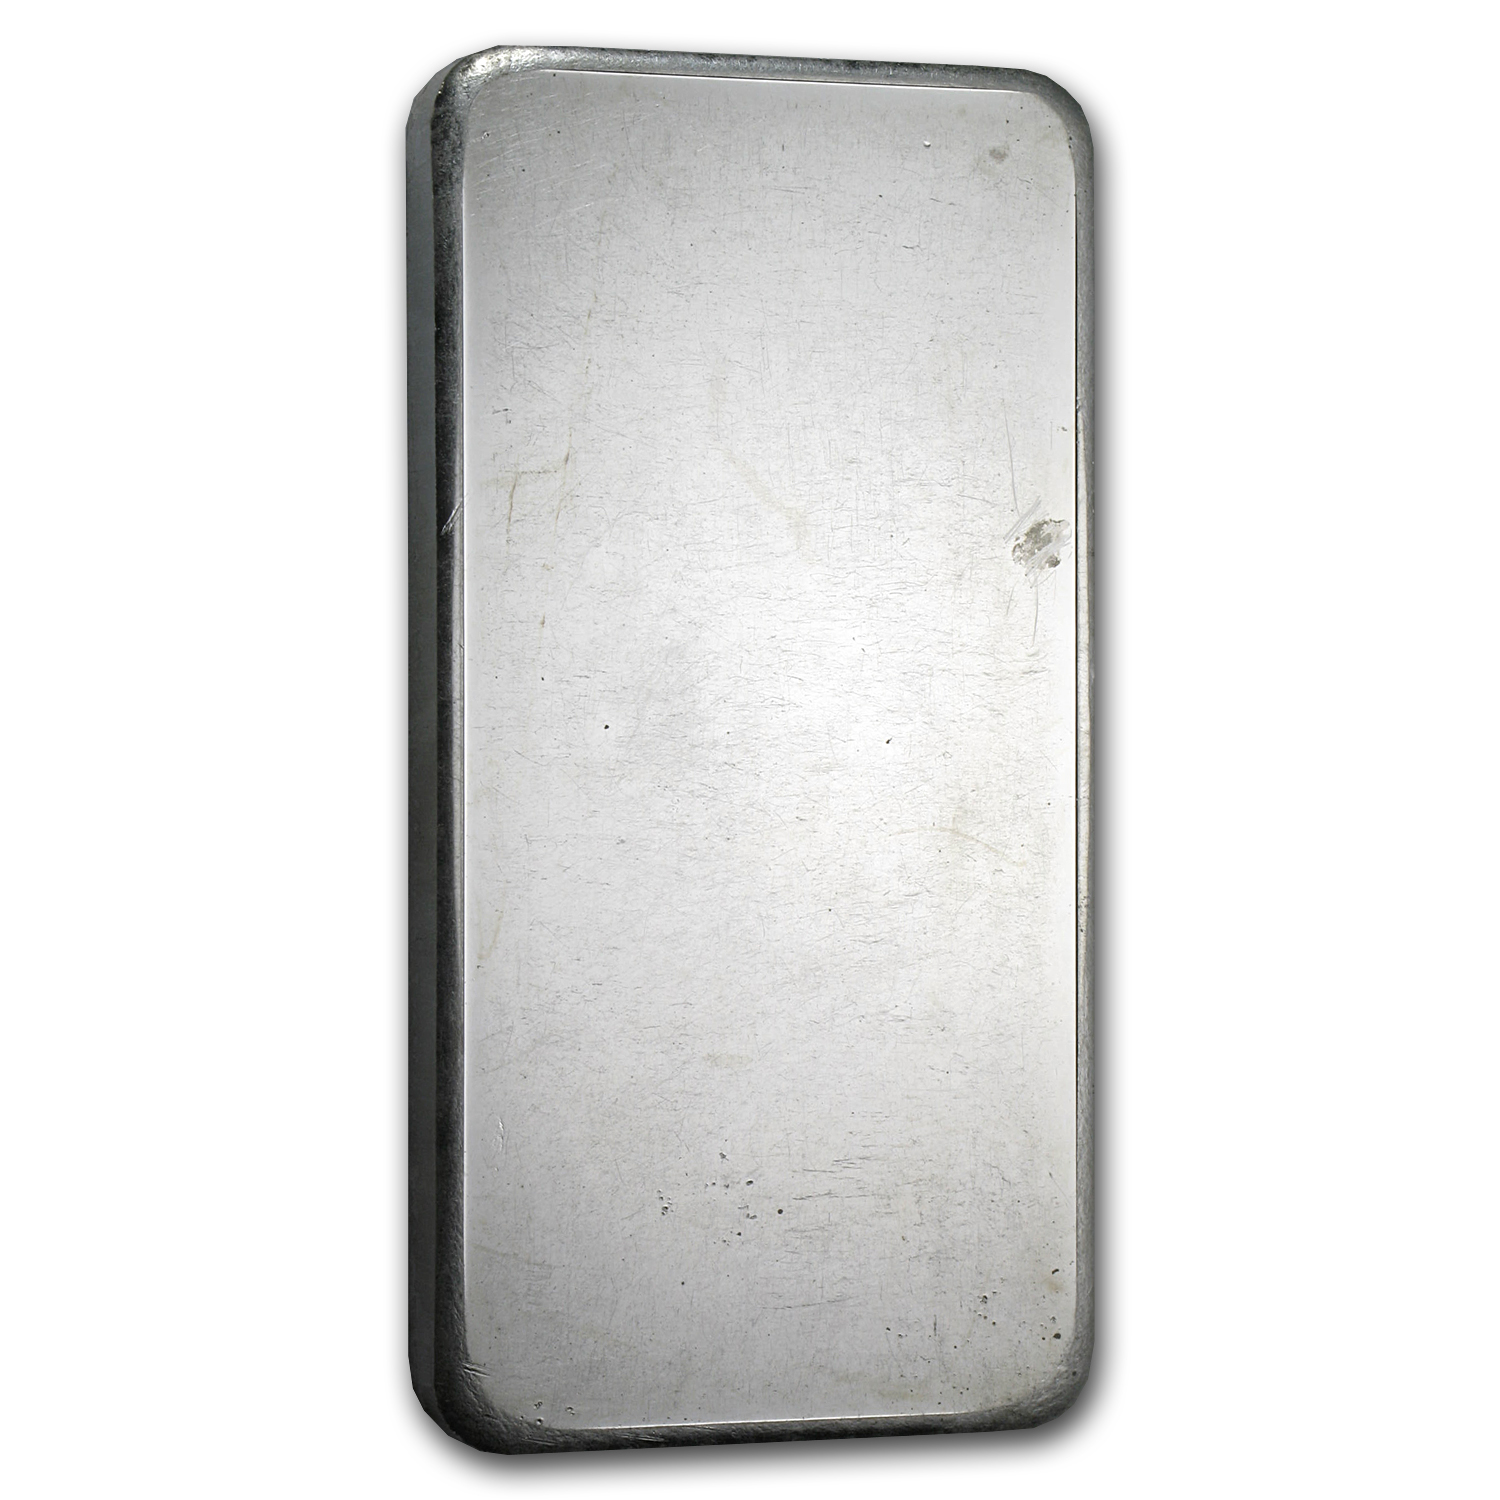 10 oz Silver Bars - Johnson Matthey (Pressed/Plain Back)